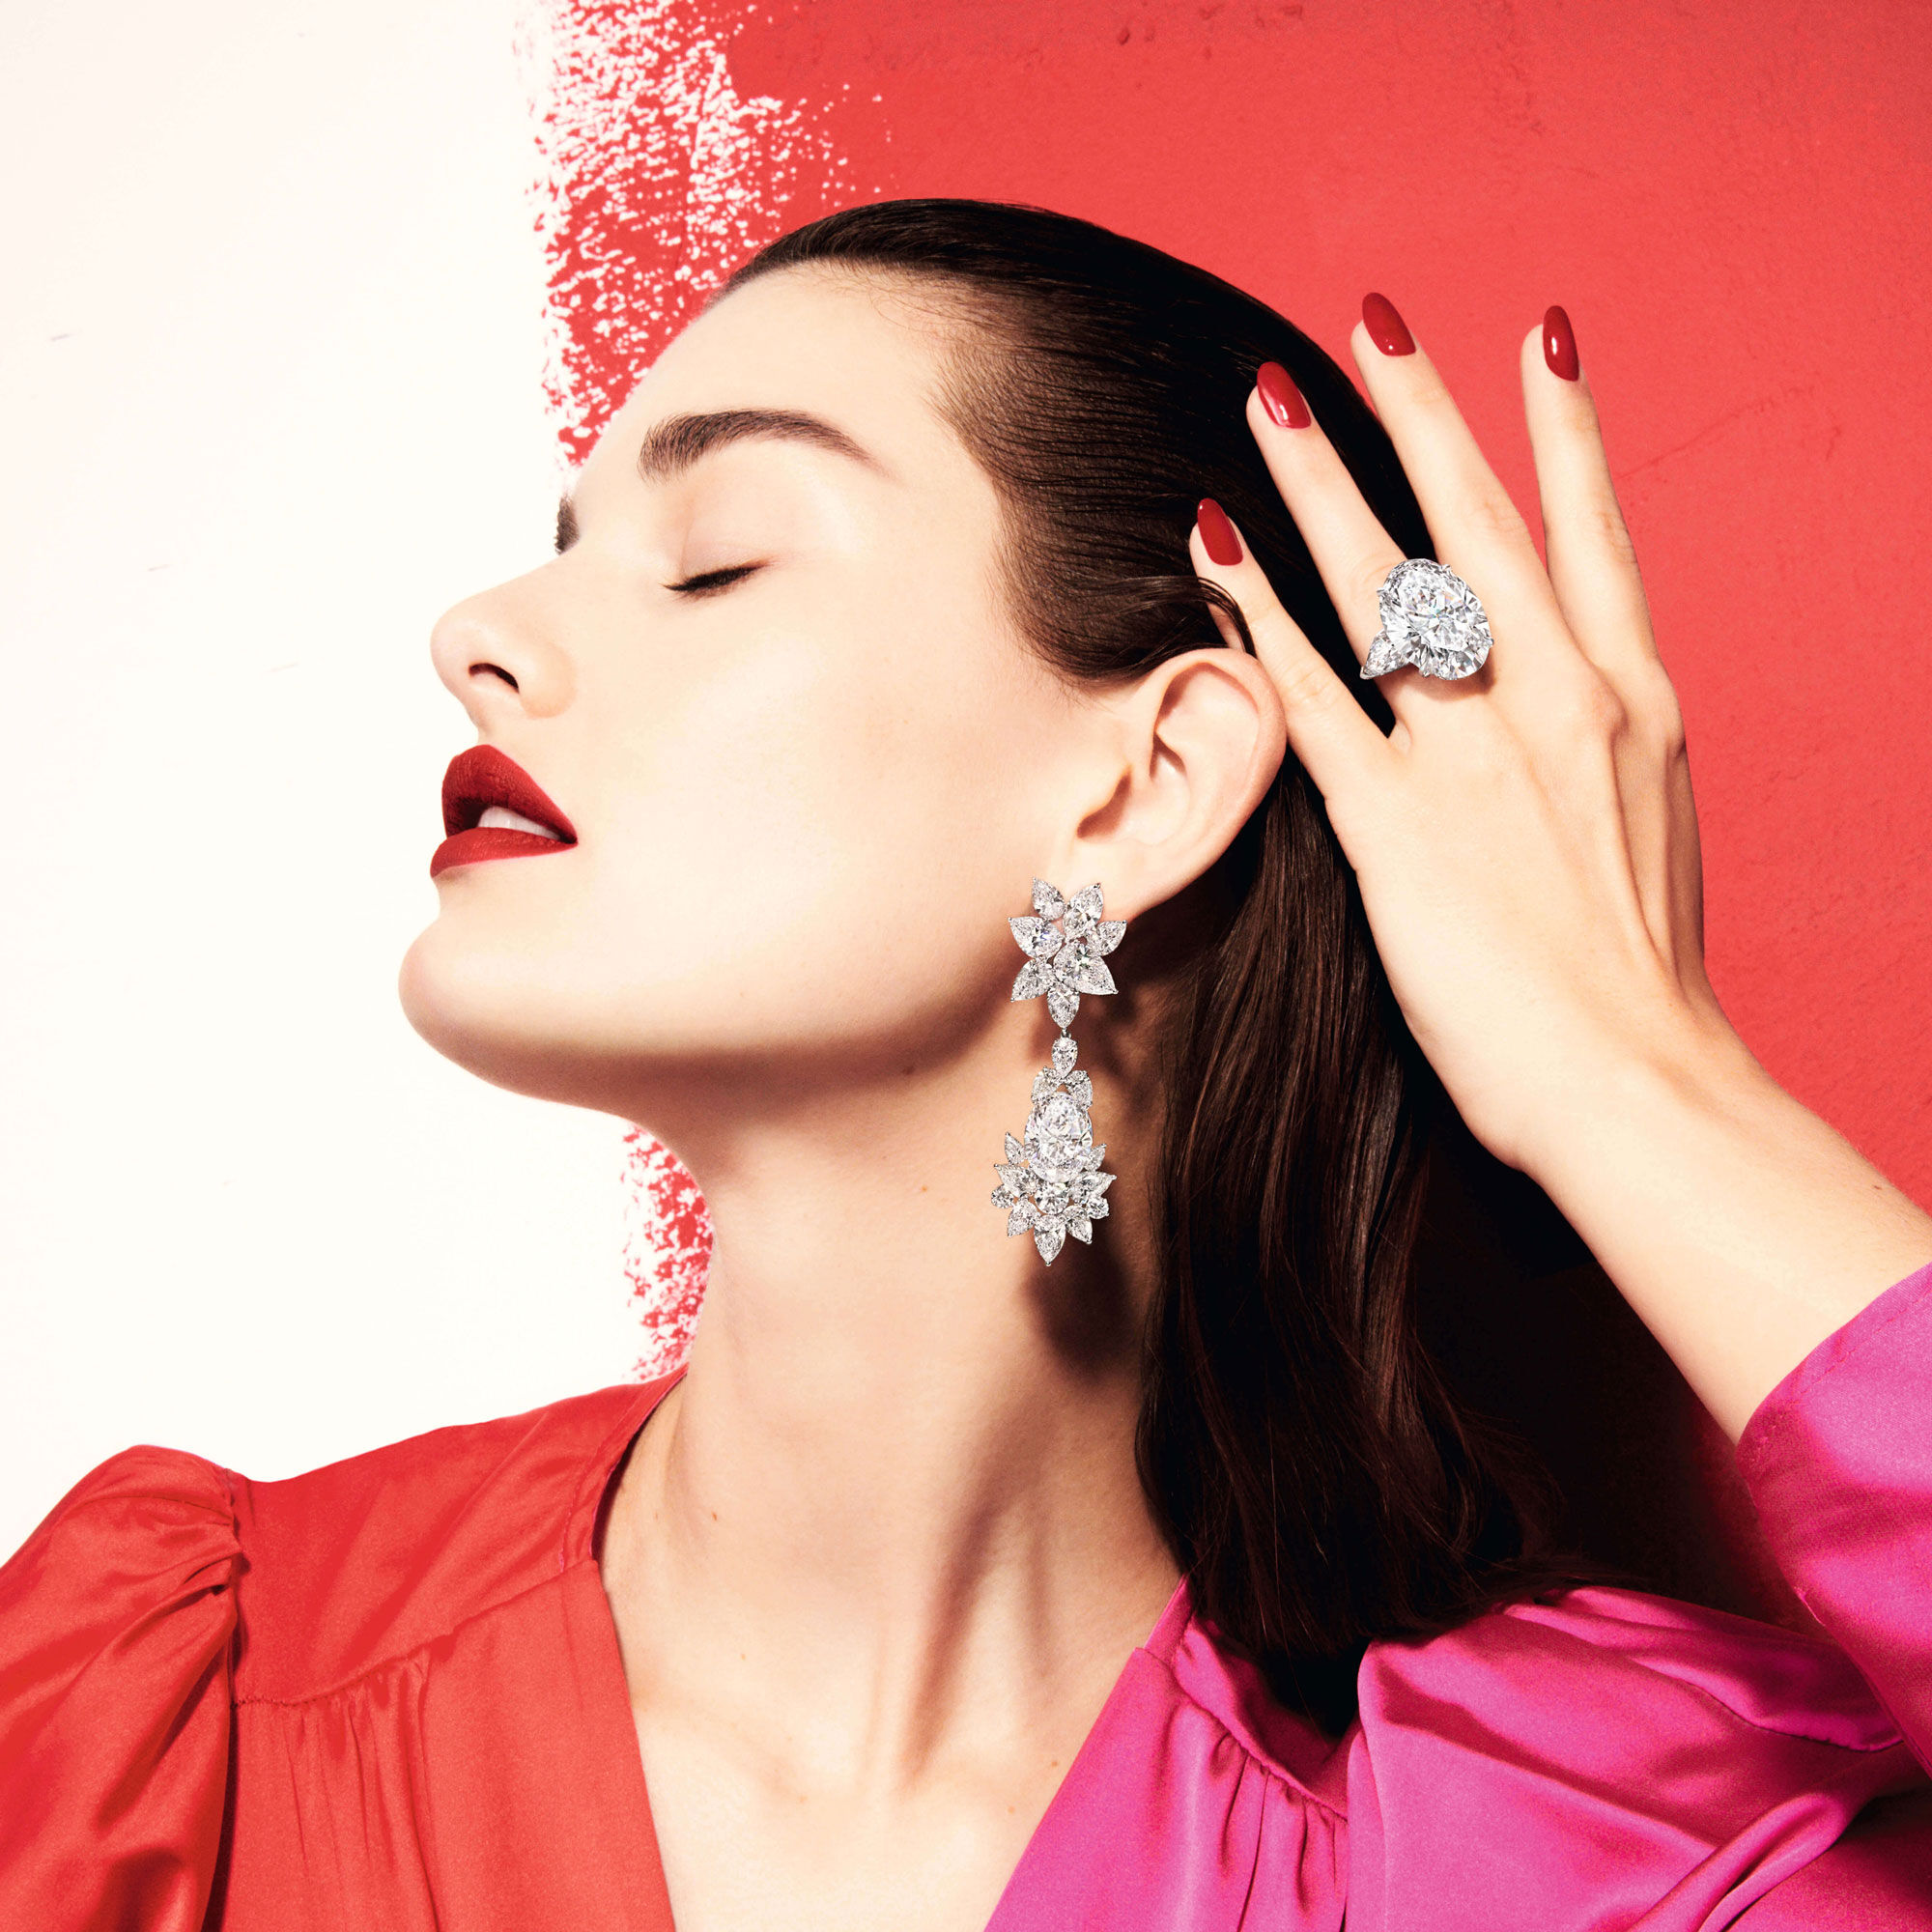 close up of a lady standing in front of a wall with red paint wearing Graff diamond earrings and ring